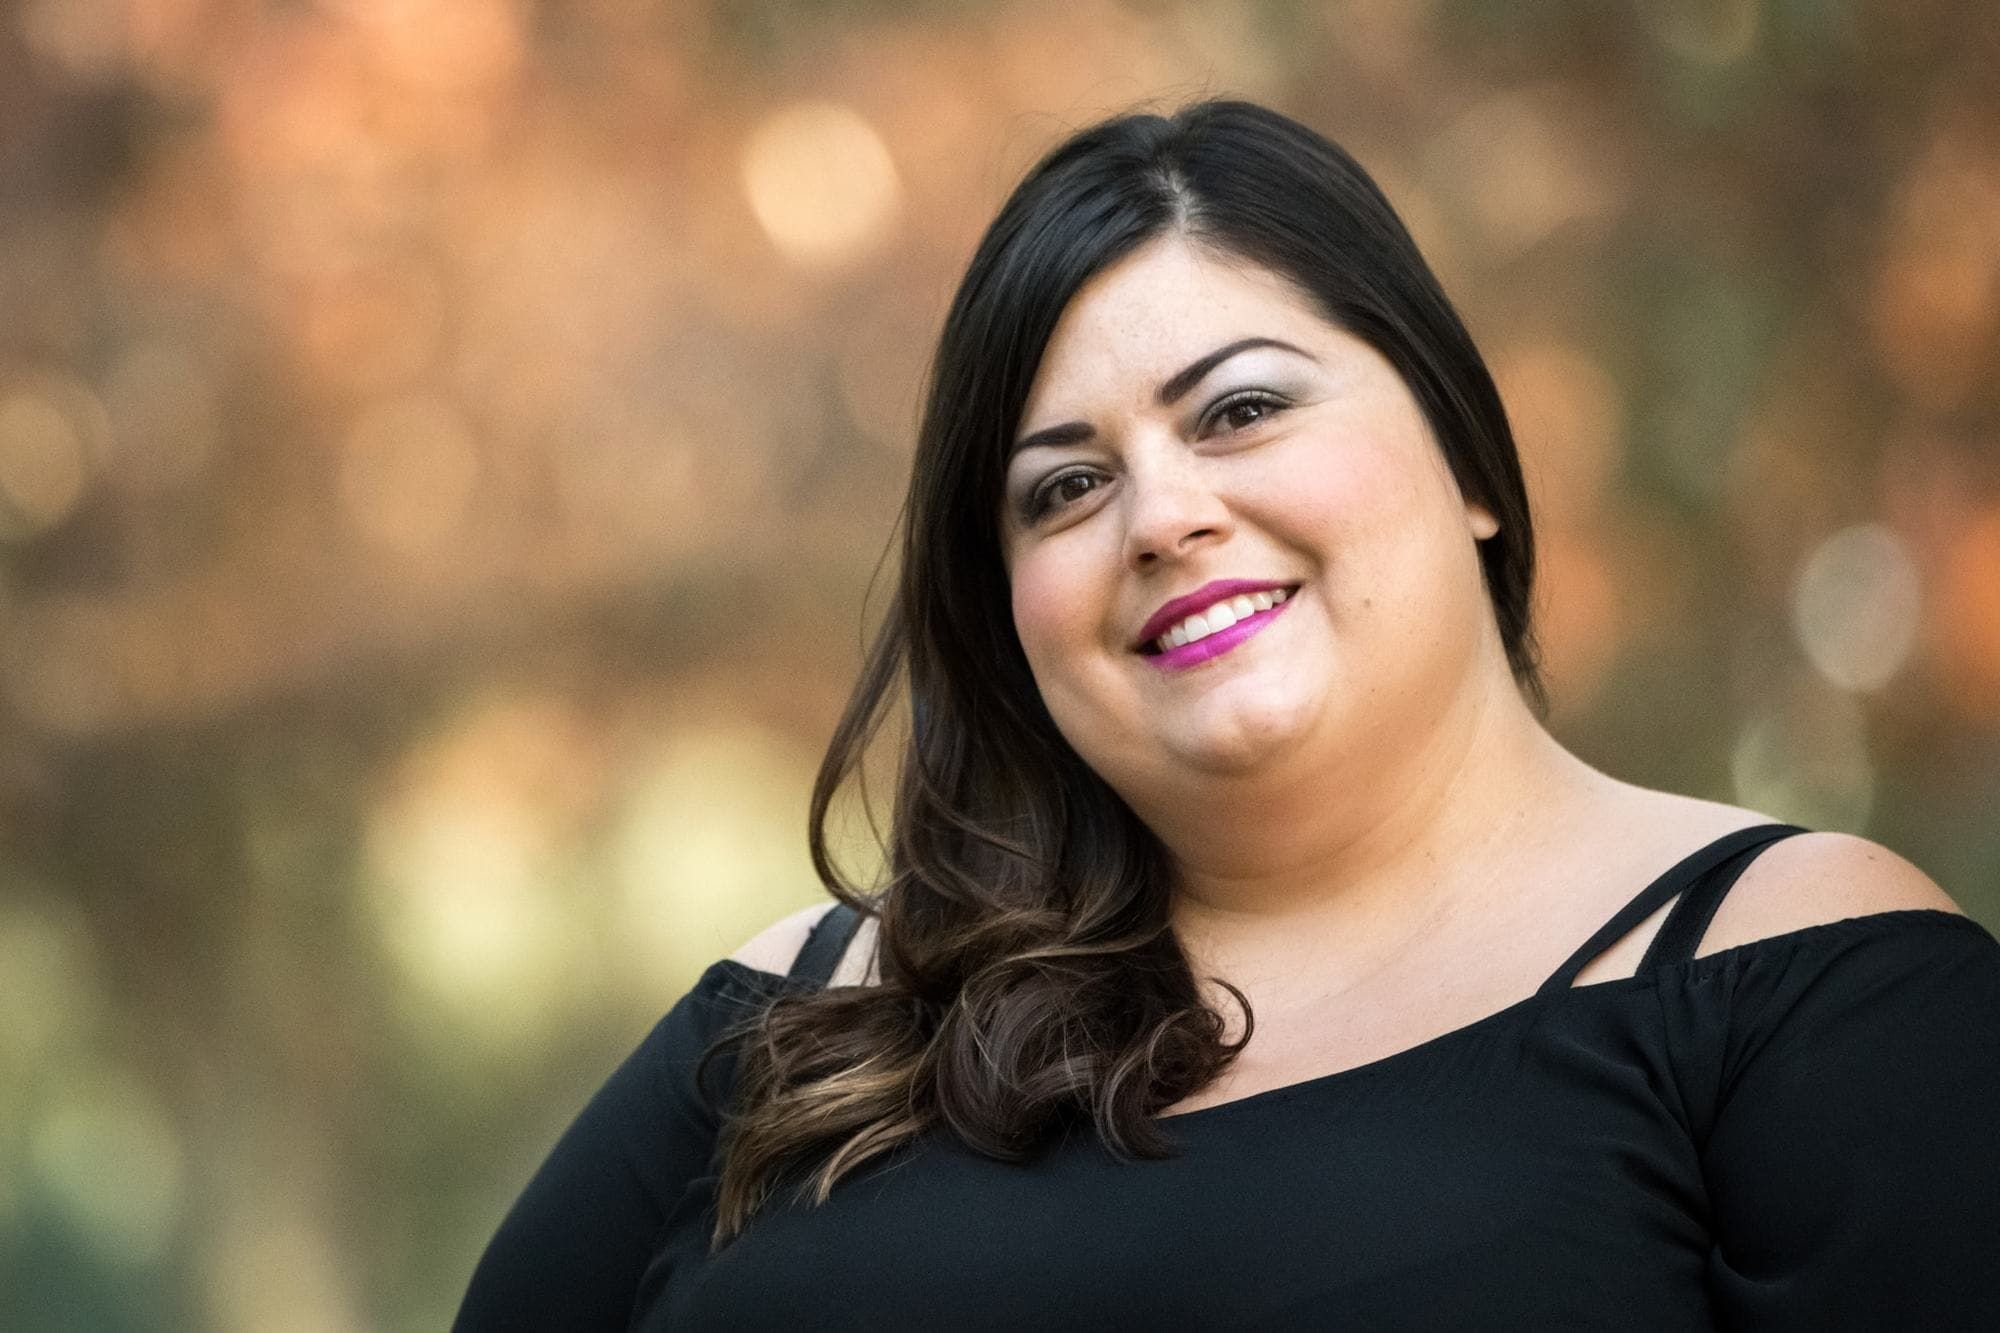 The Best Latest Plus Size Woman Hairstyles Flirty And Flattering Pictures